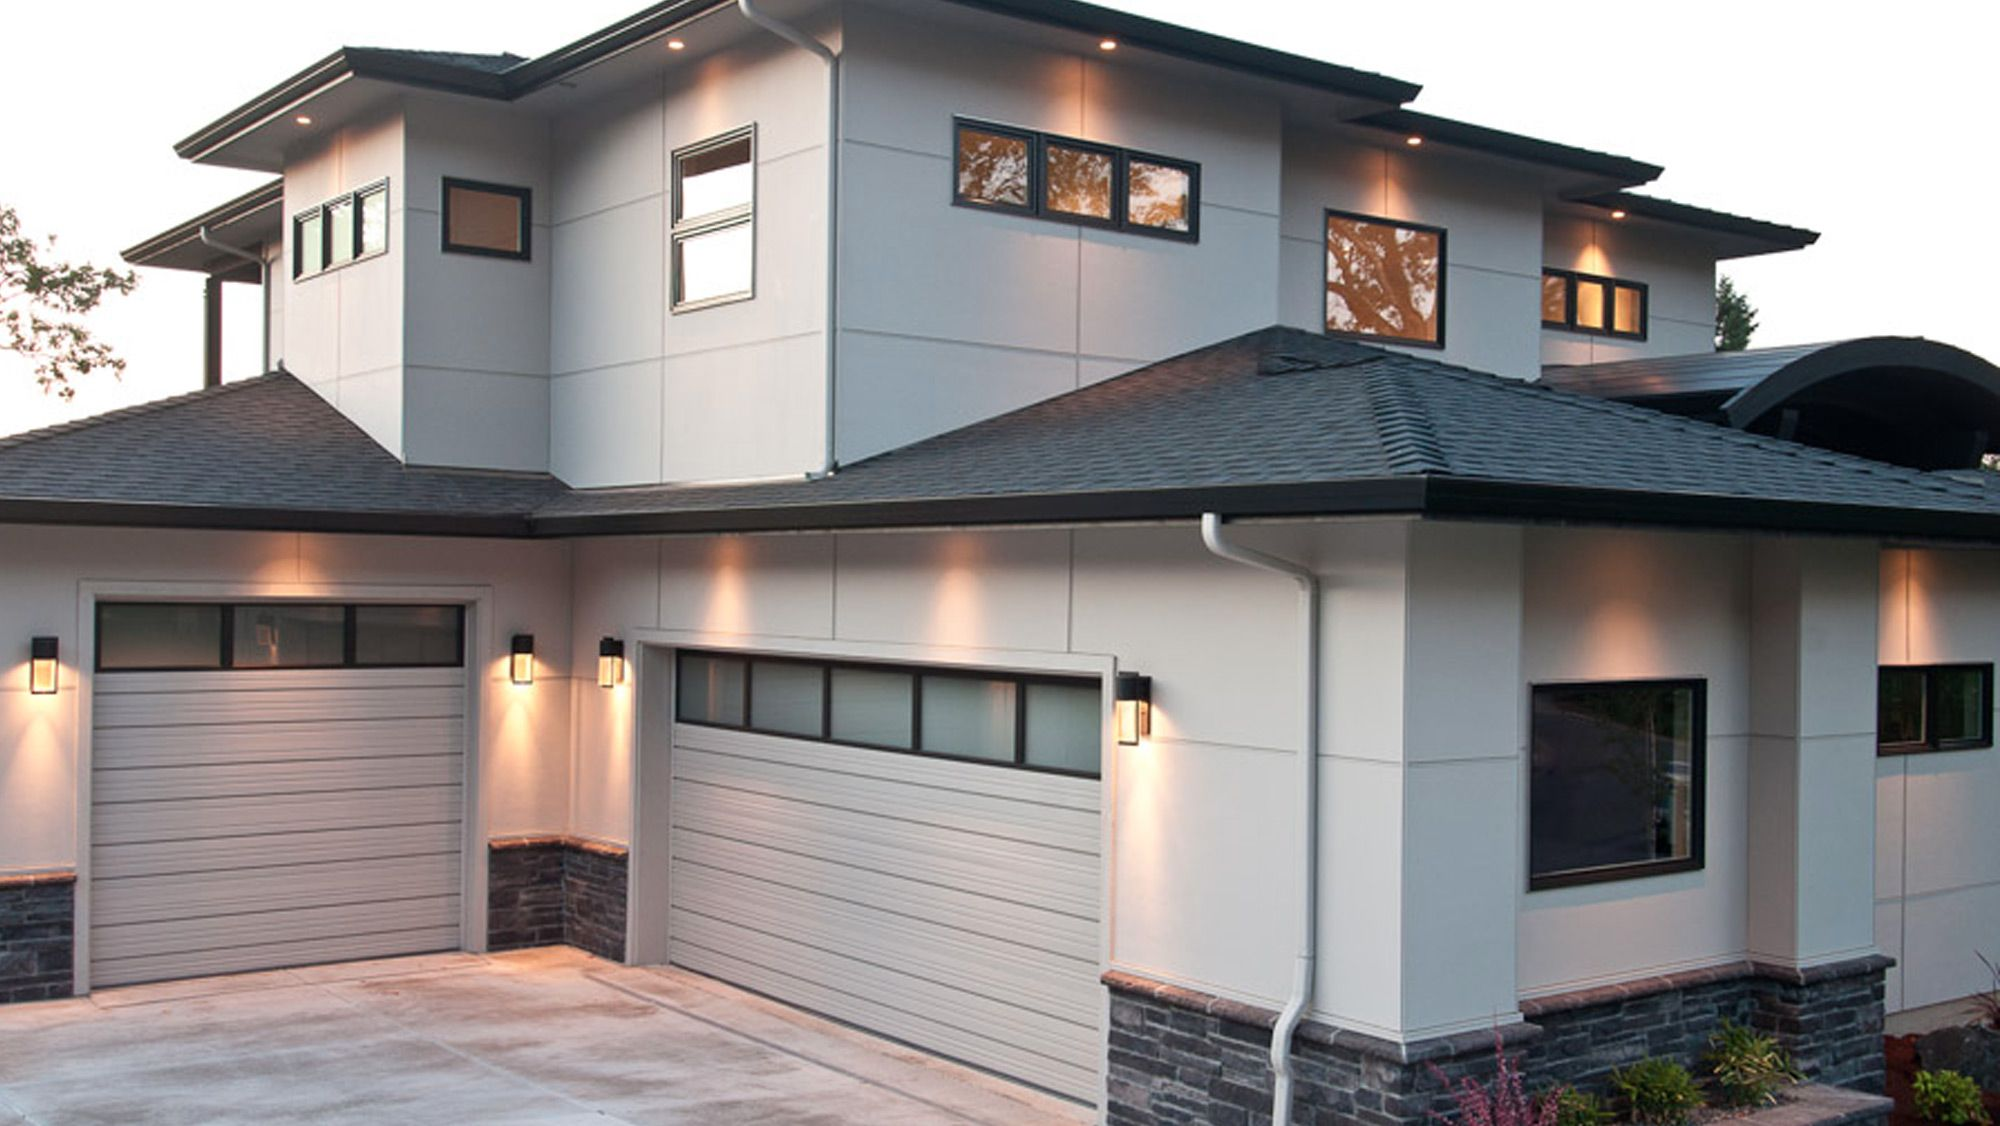 Fiber Cement Siding Panel Single Family Gallery Xtremetrim Contemporary House Exterior House Cladding House Siding